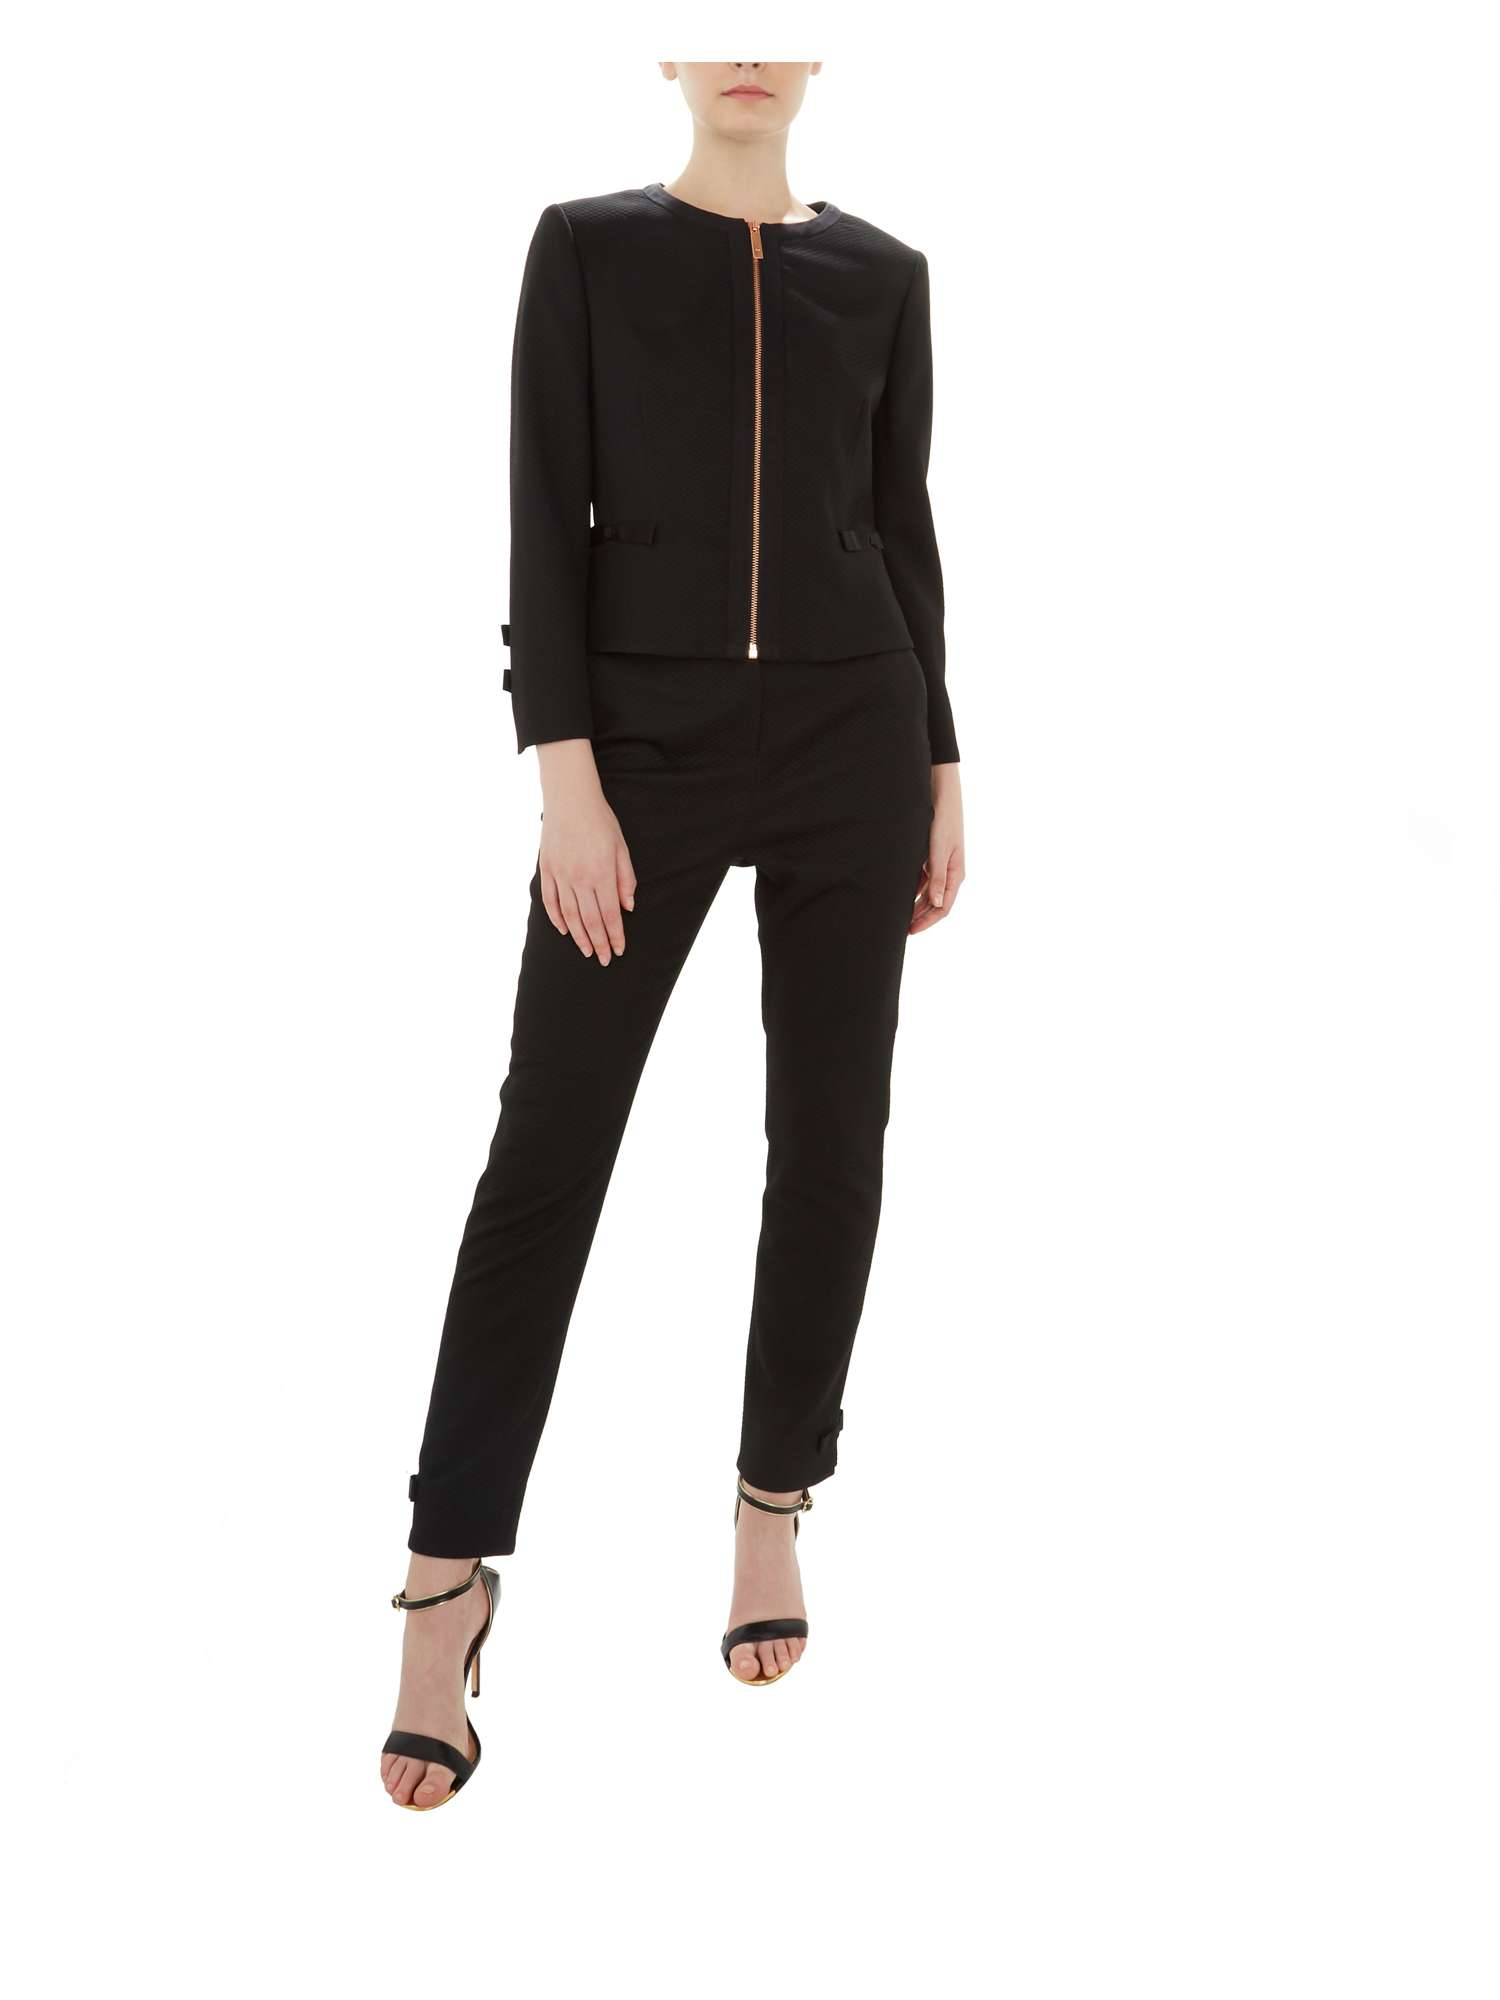 d4cf2c01ee408c Nadae Bow Ted Baker Cropped Jacket Detail 8xq0wgTw1F at dwell ...